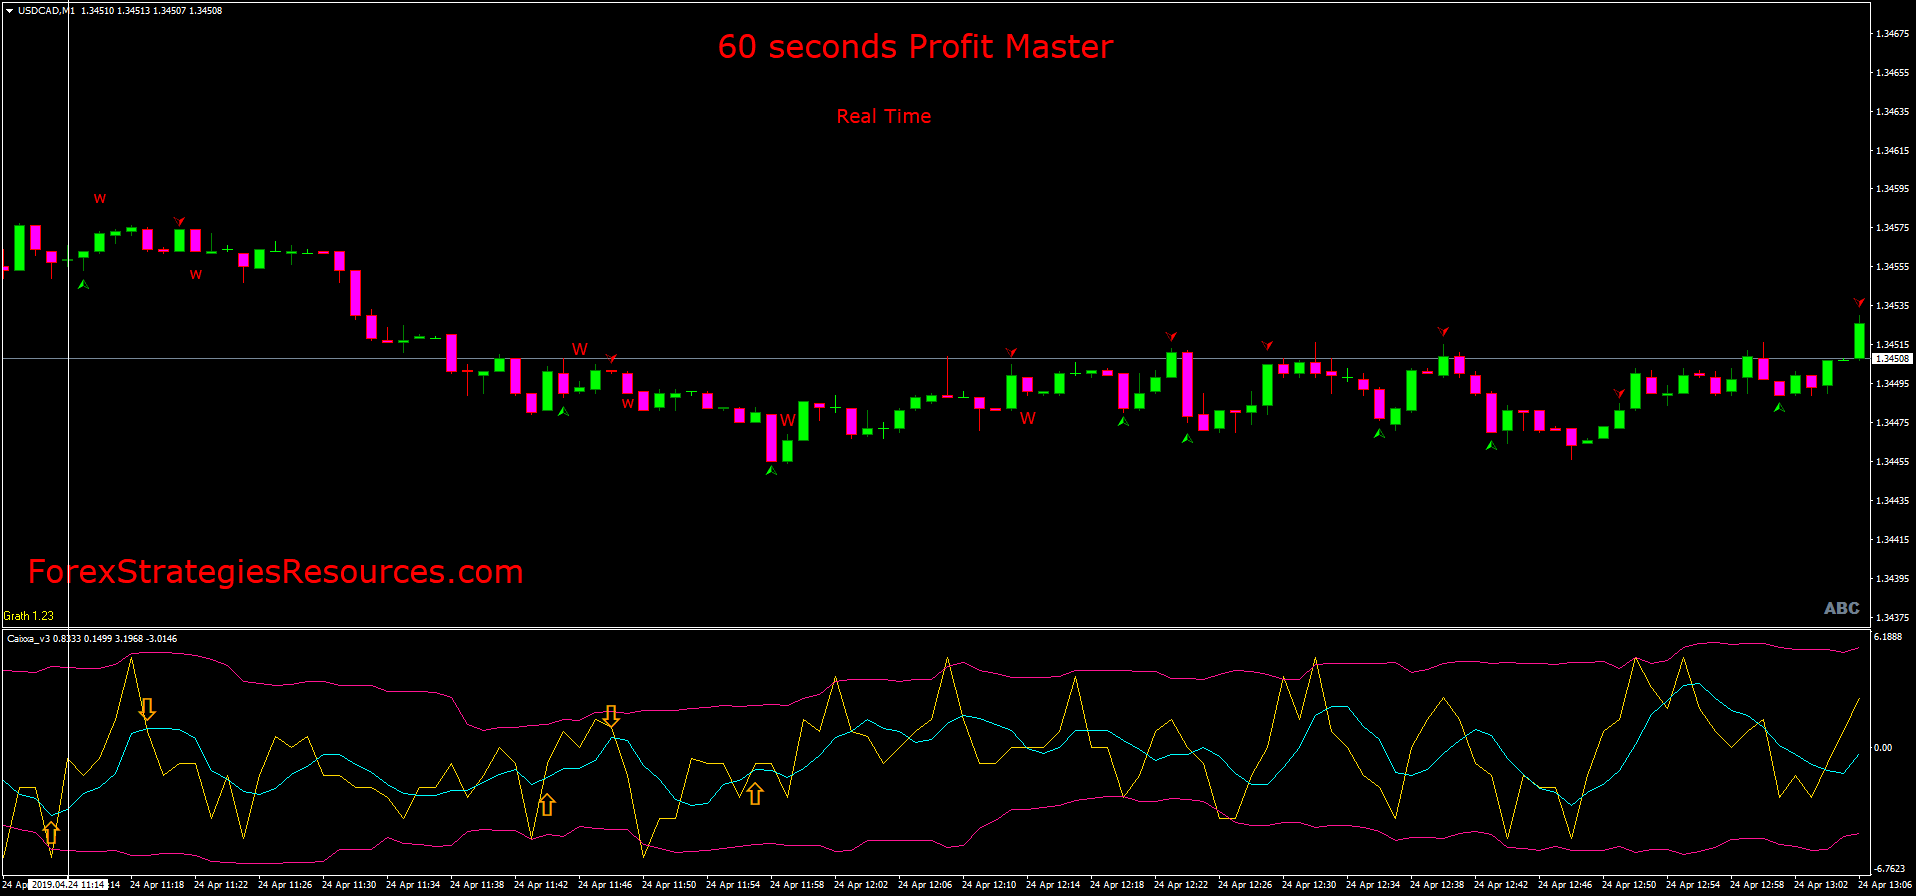 60 seconds binary options system indicator